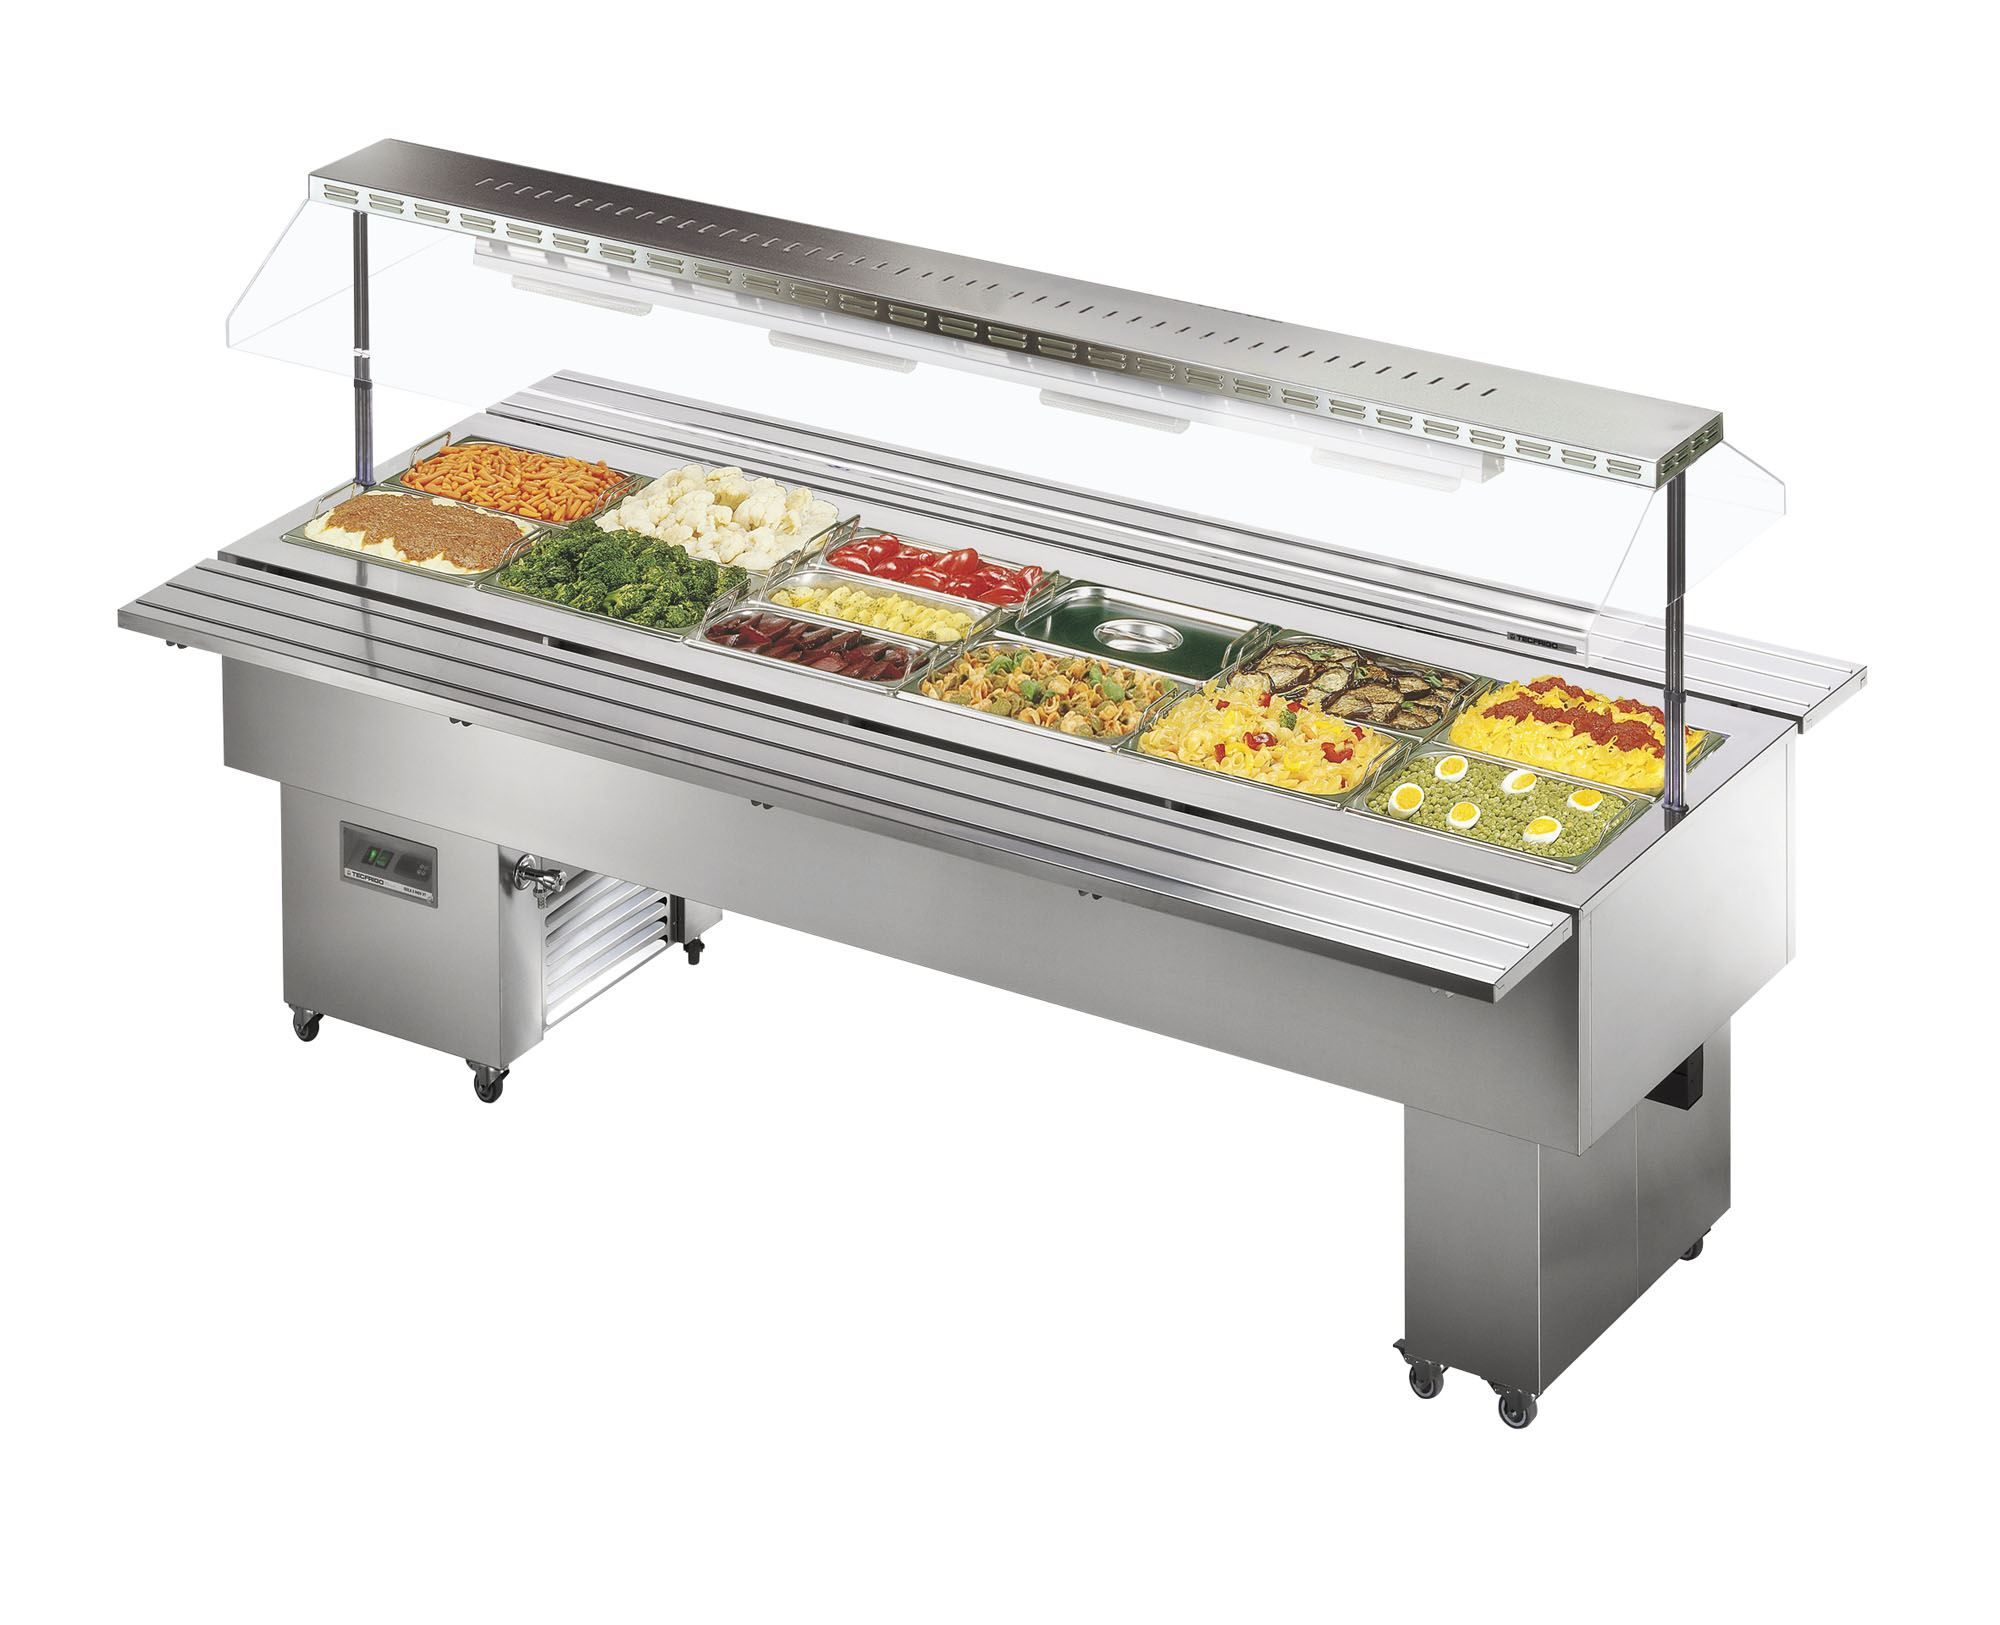 Image result for outdoor salad bar images Buffet display